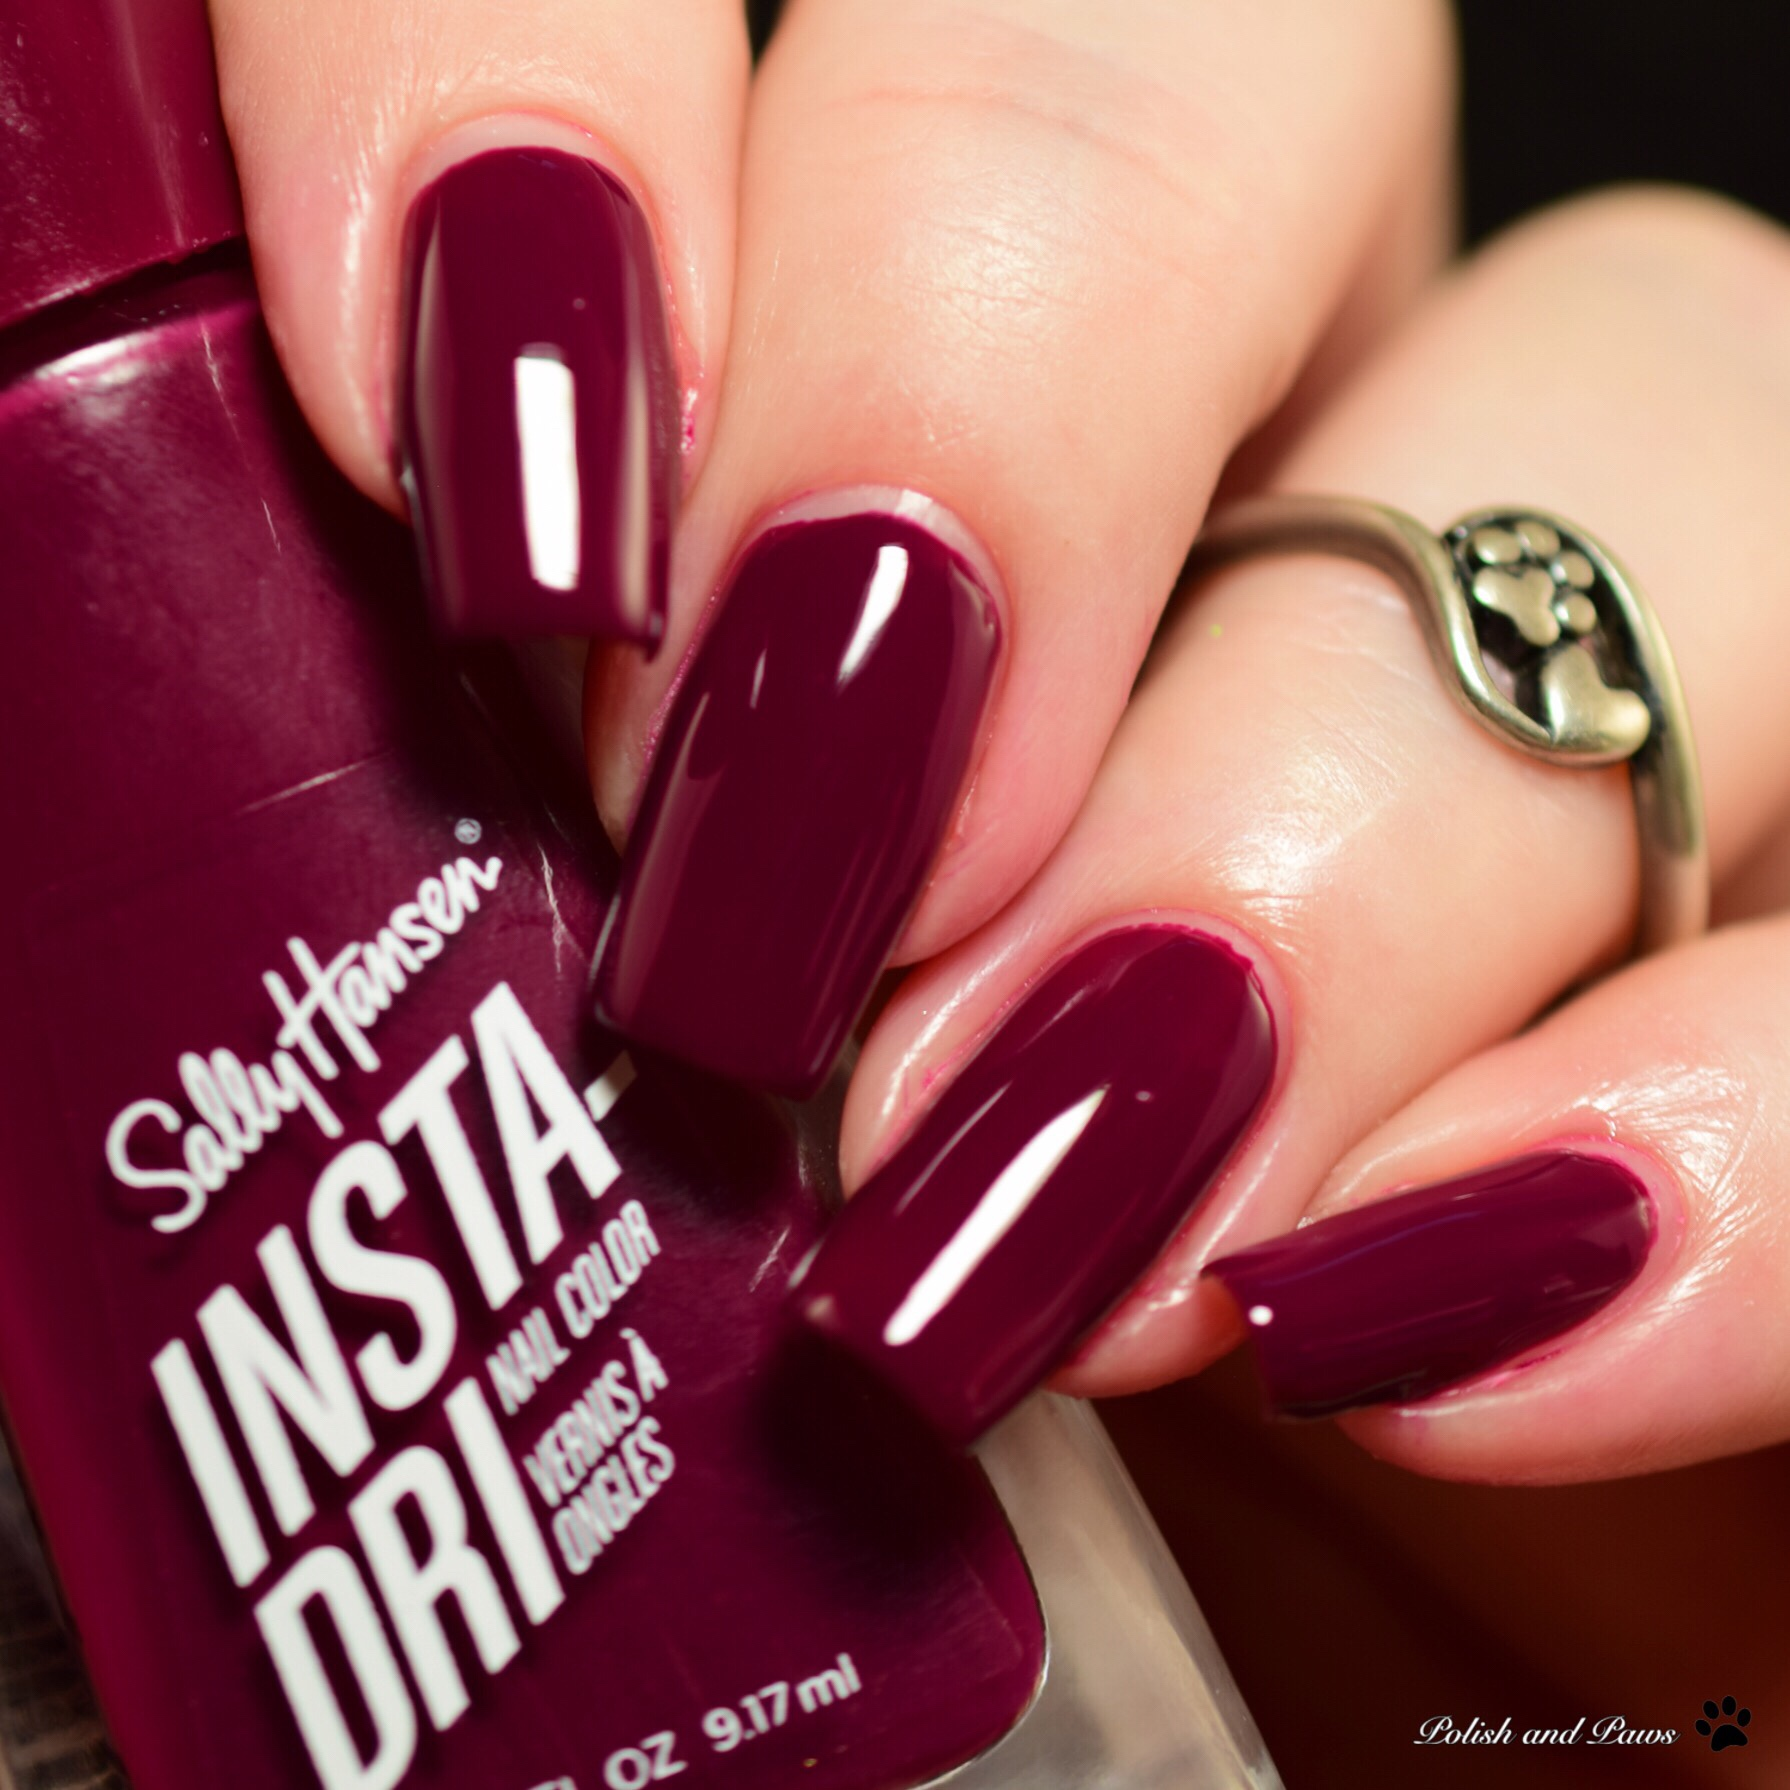 Sally Hansen Insta-Dri Just in Wine